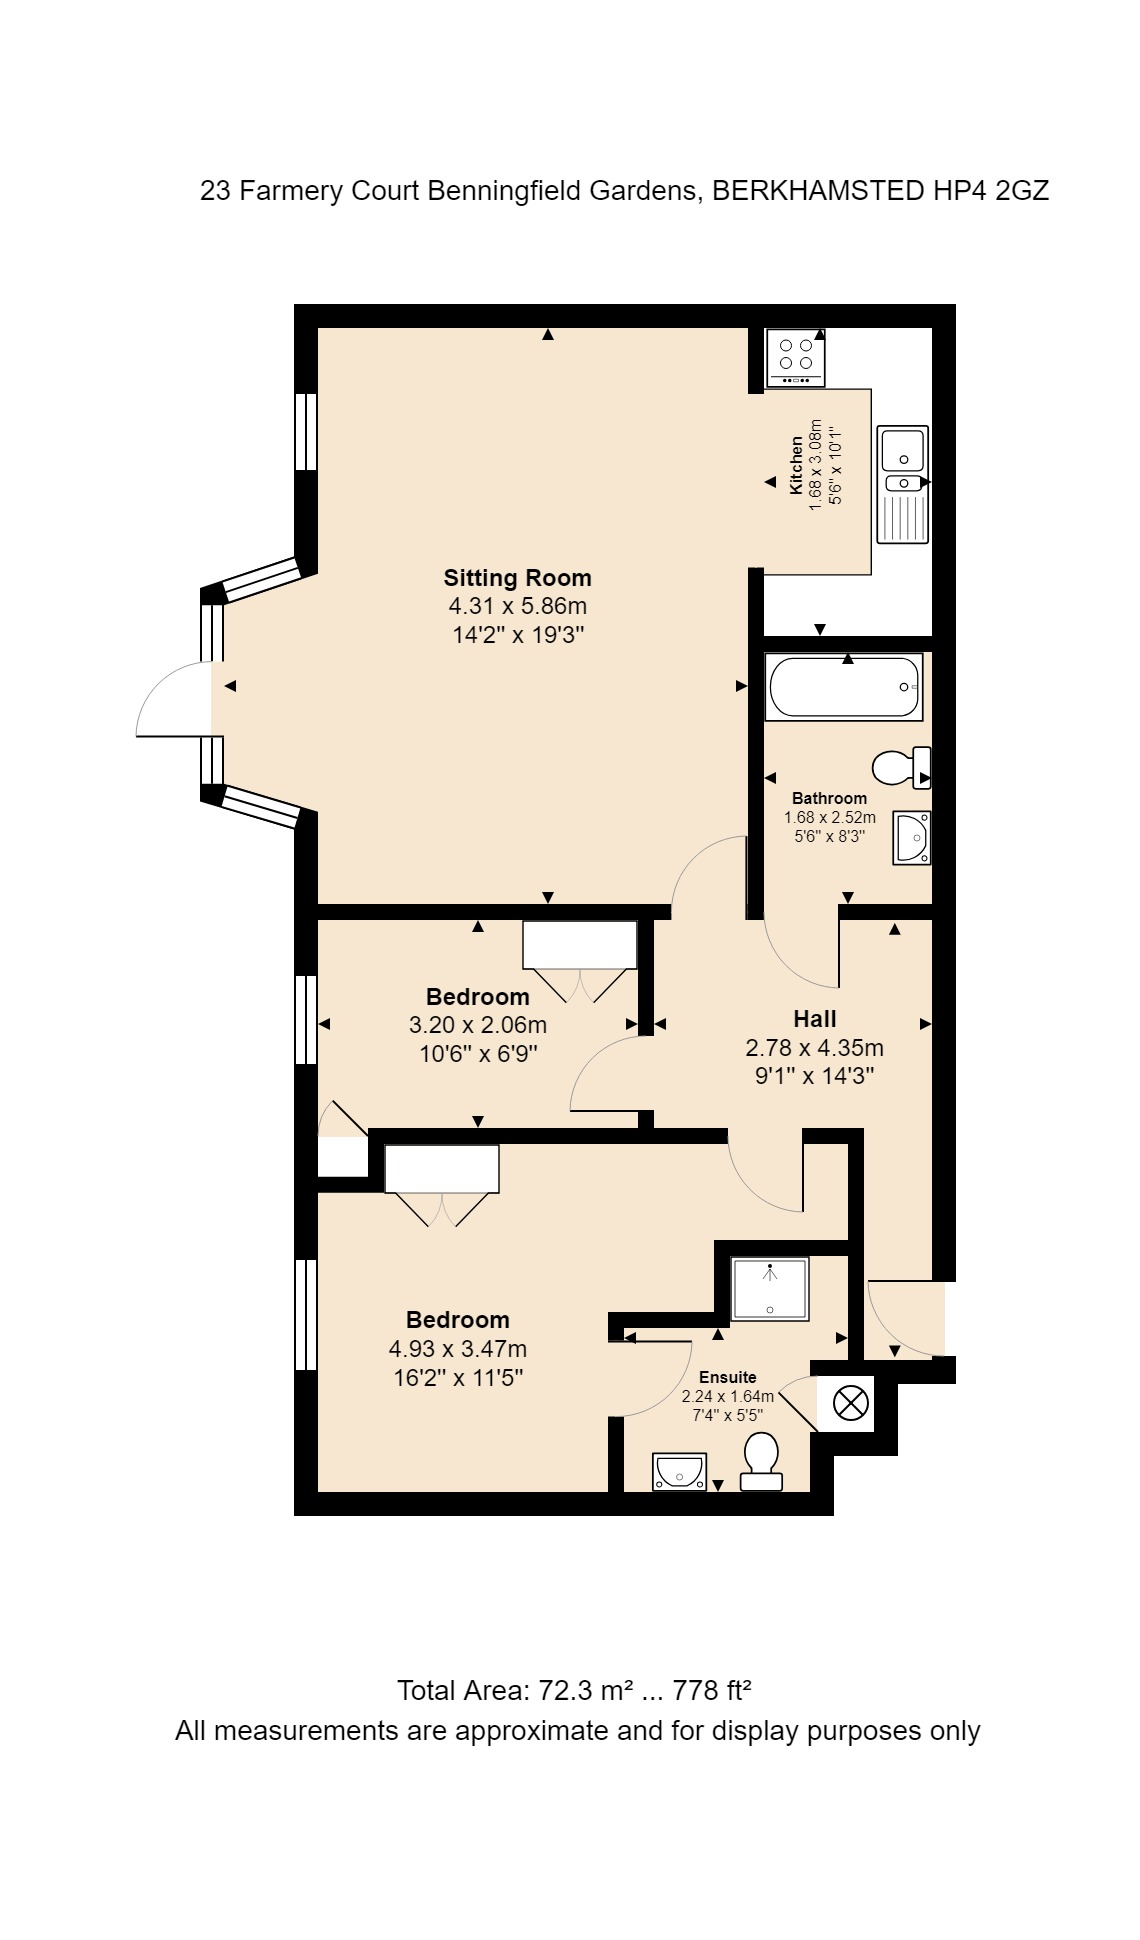 23 Farmery Court Floorplan